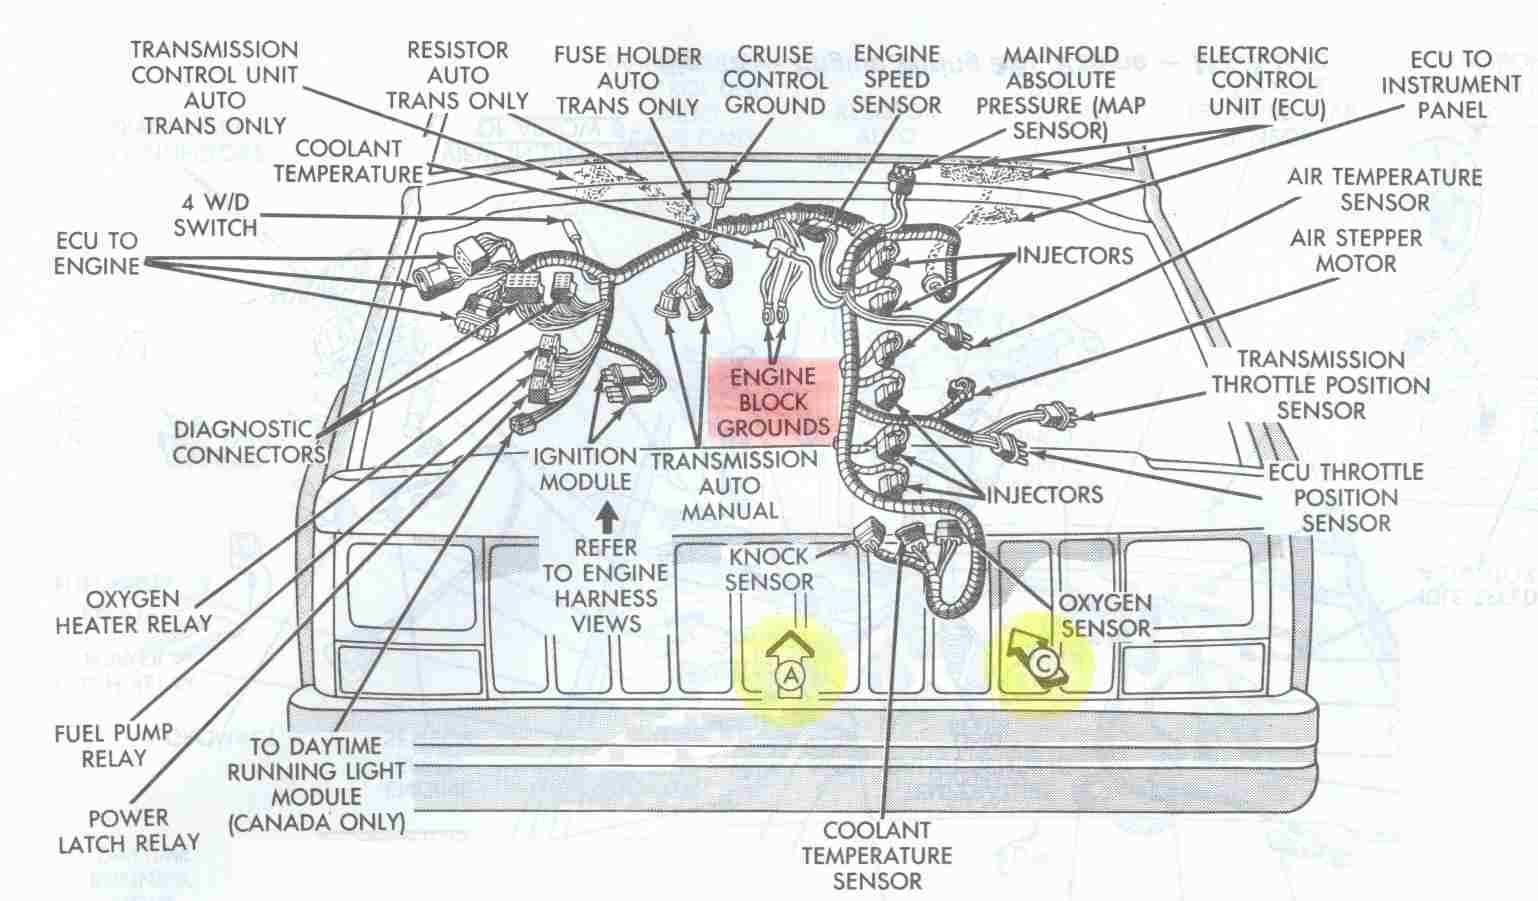 bde5d759-cf08-43ab-8e2d-e02f22cd221b_Electrical_Engine_Ground_Points_Overview.jpg